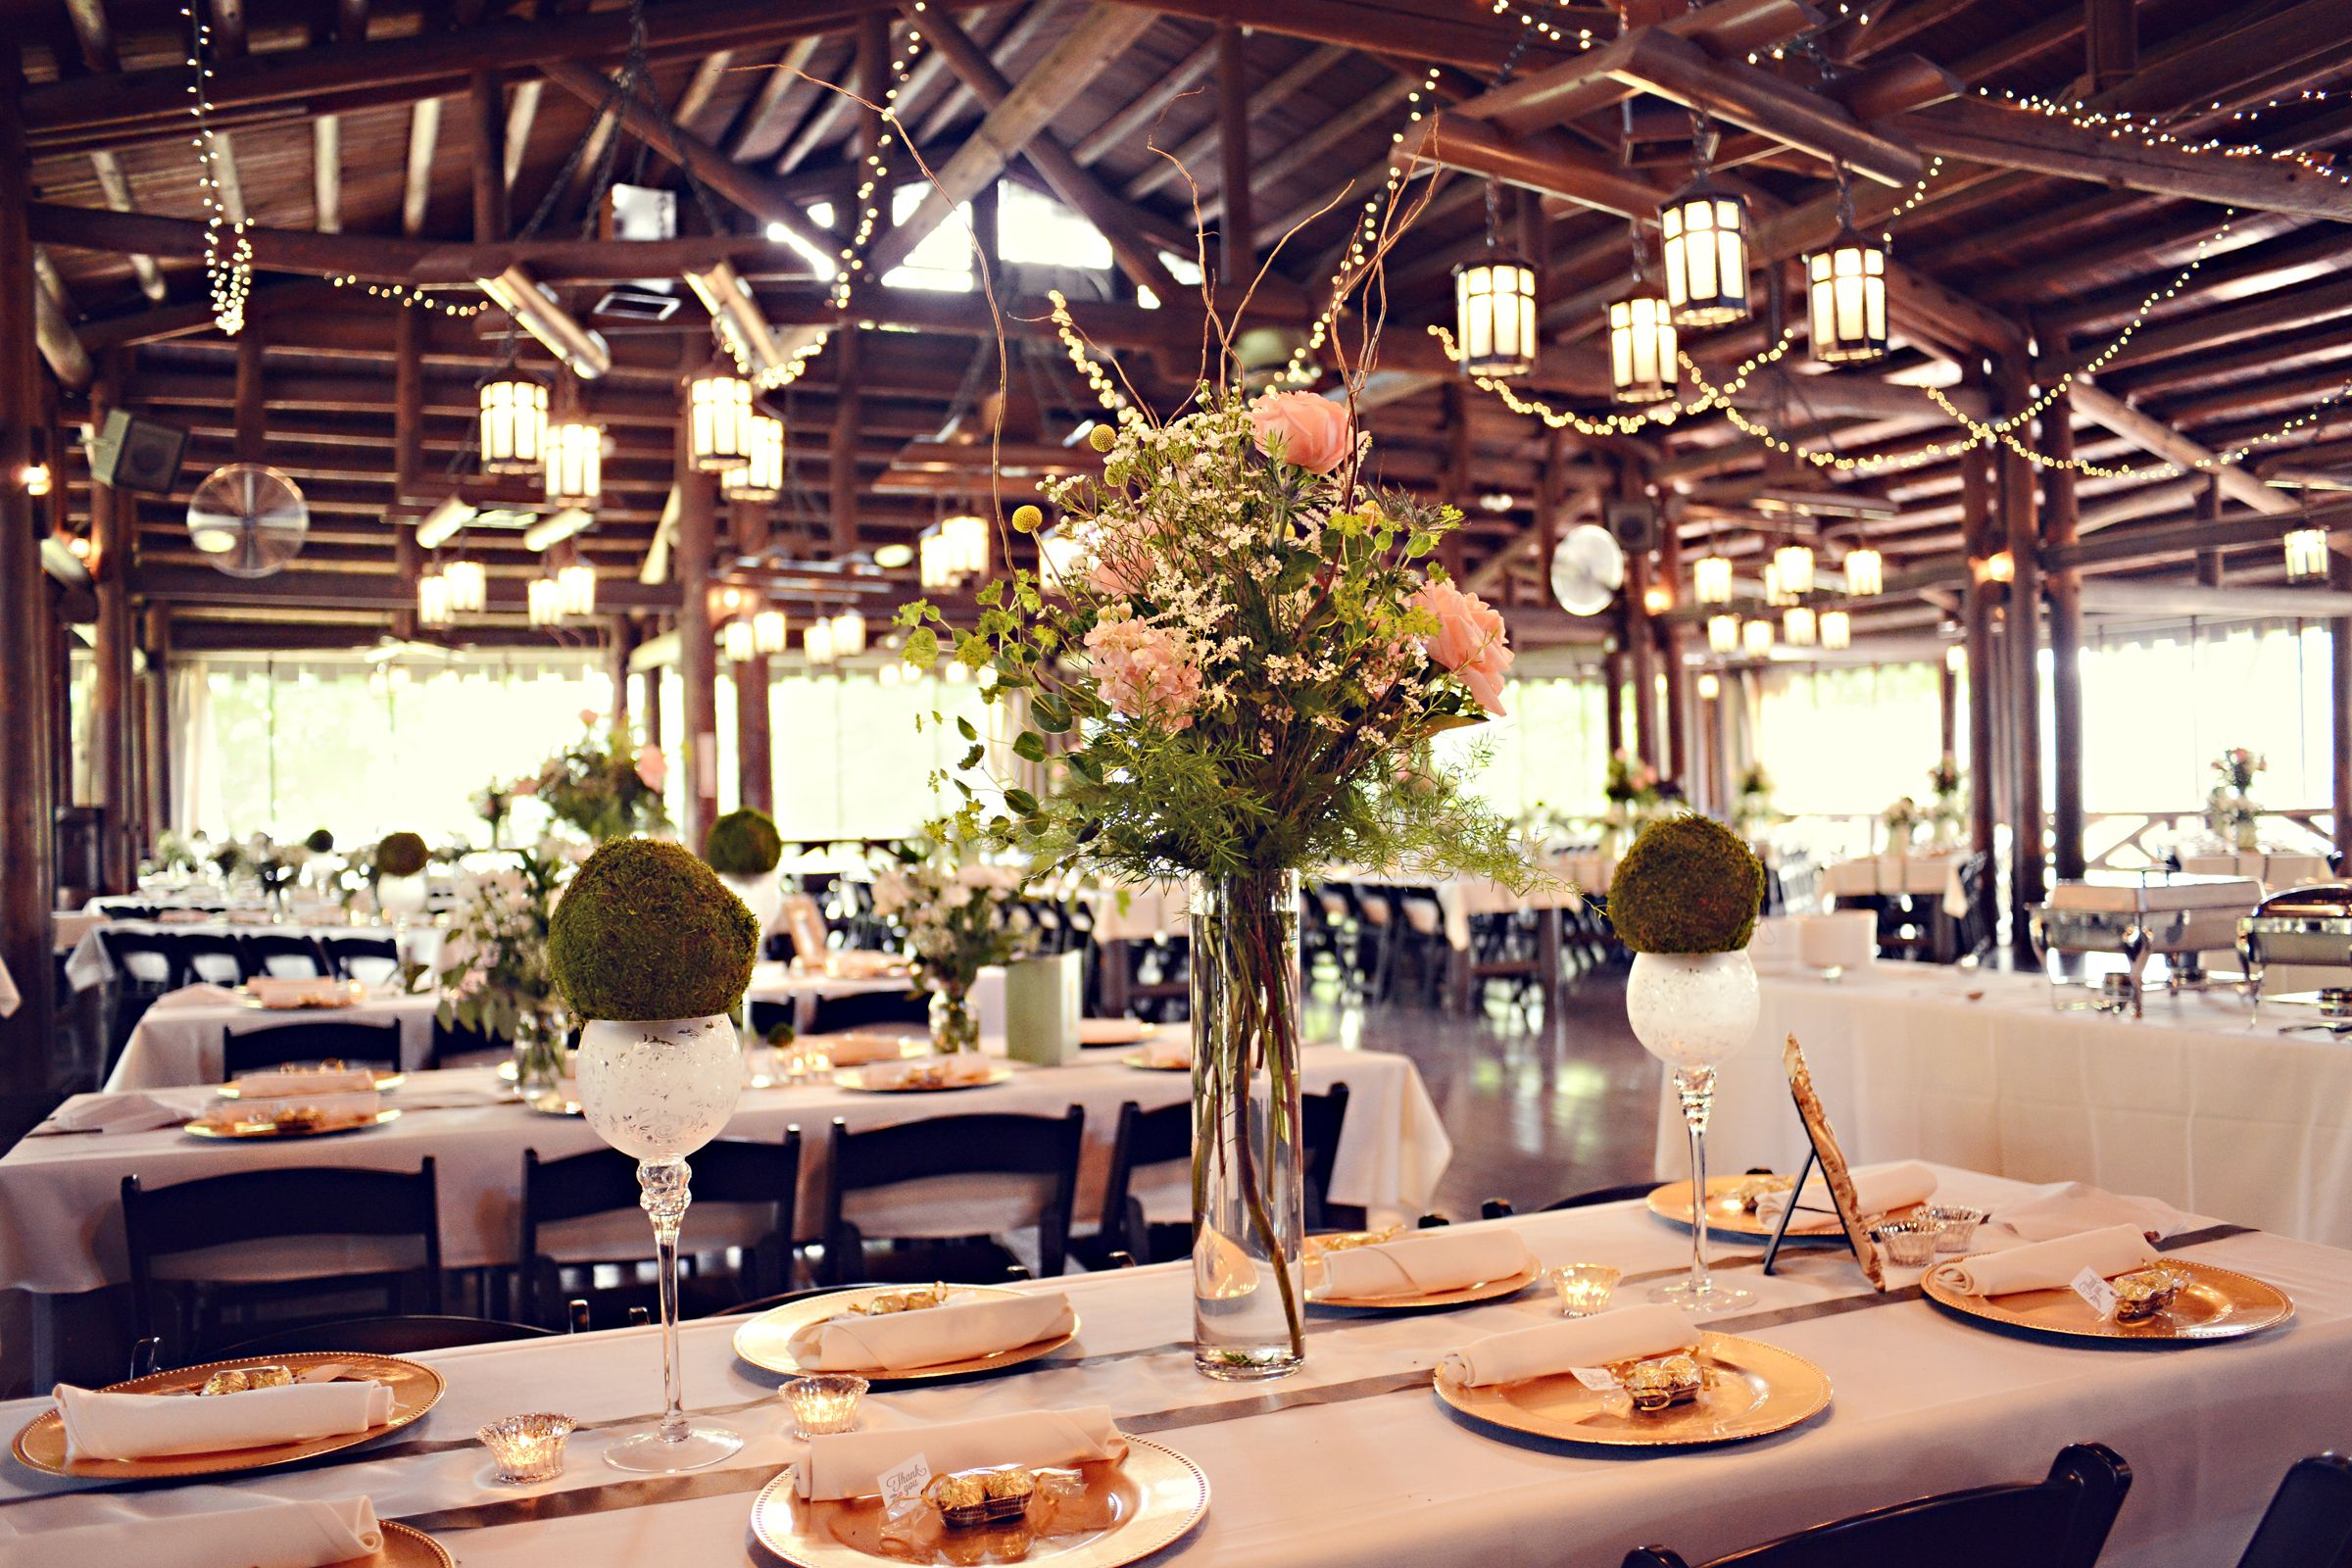 Rustic Wedding Reception At Hoover Parku0026#39;s Beautiful Barn-like Reception Center. Tall ...